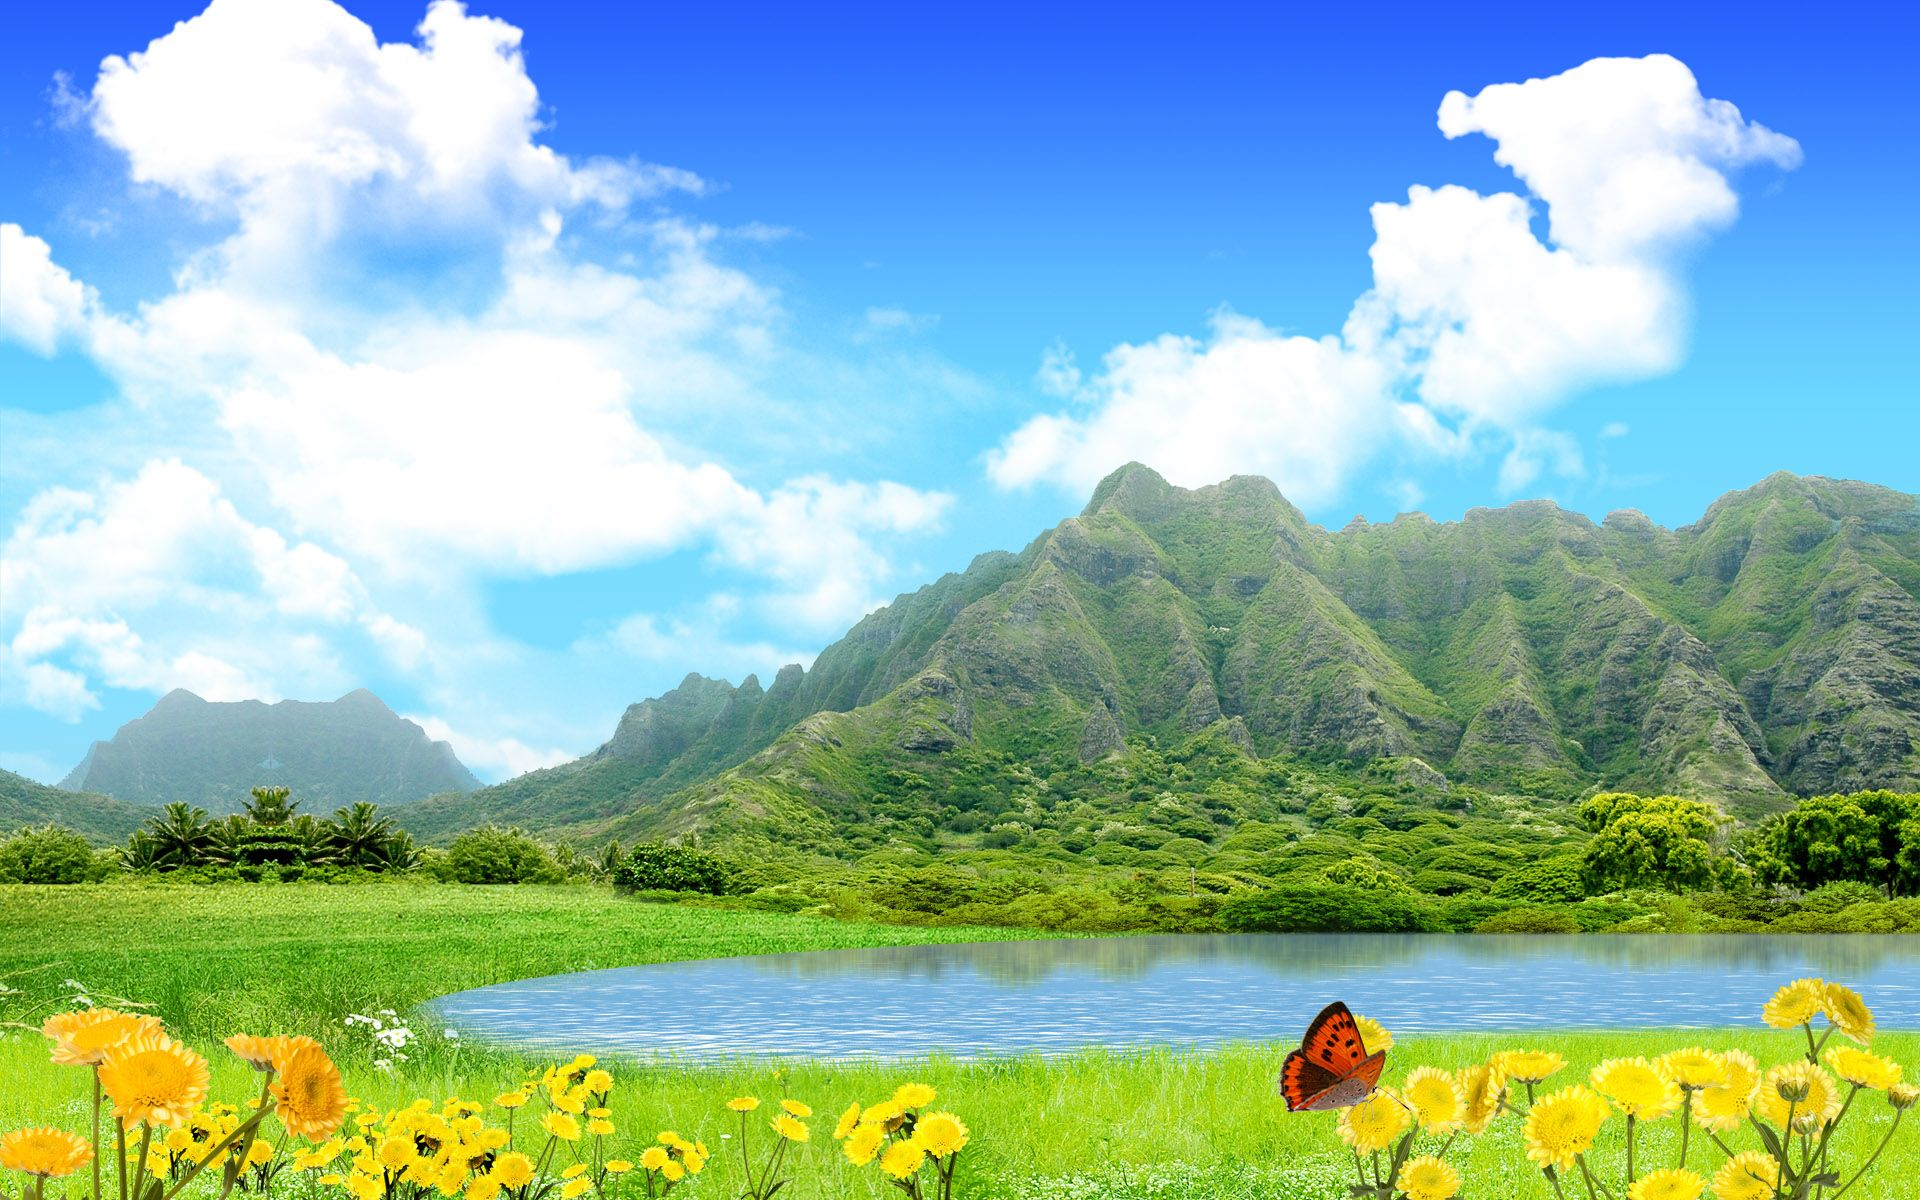 Hd Wallpapers Free Summer Fantasy Landscape For Desktop Wallpaper Kepek